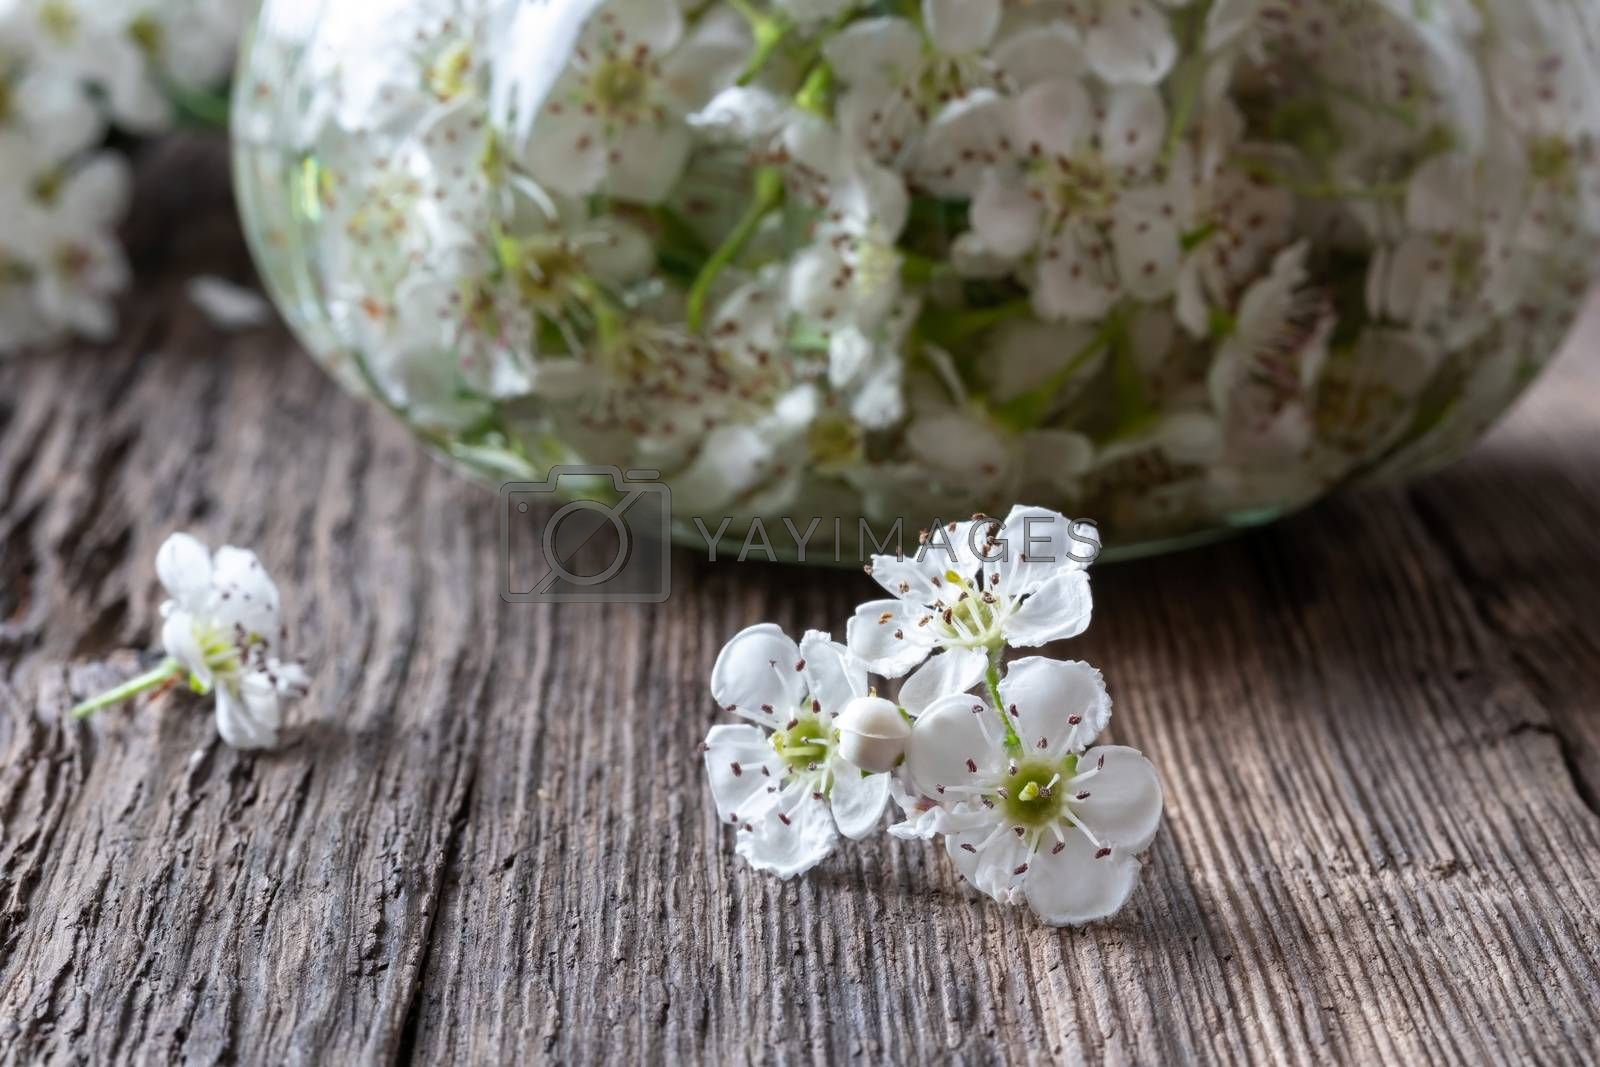 Fresh hawthorn flowers with tincture in the background